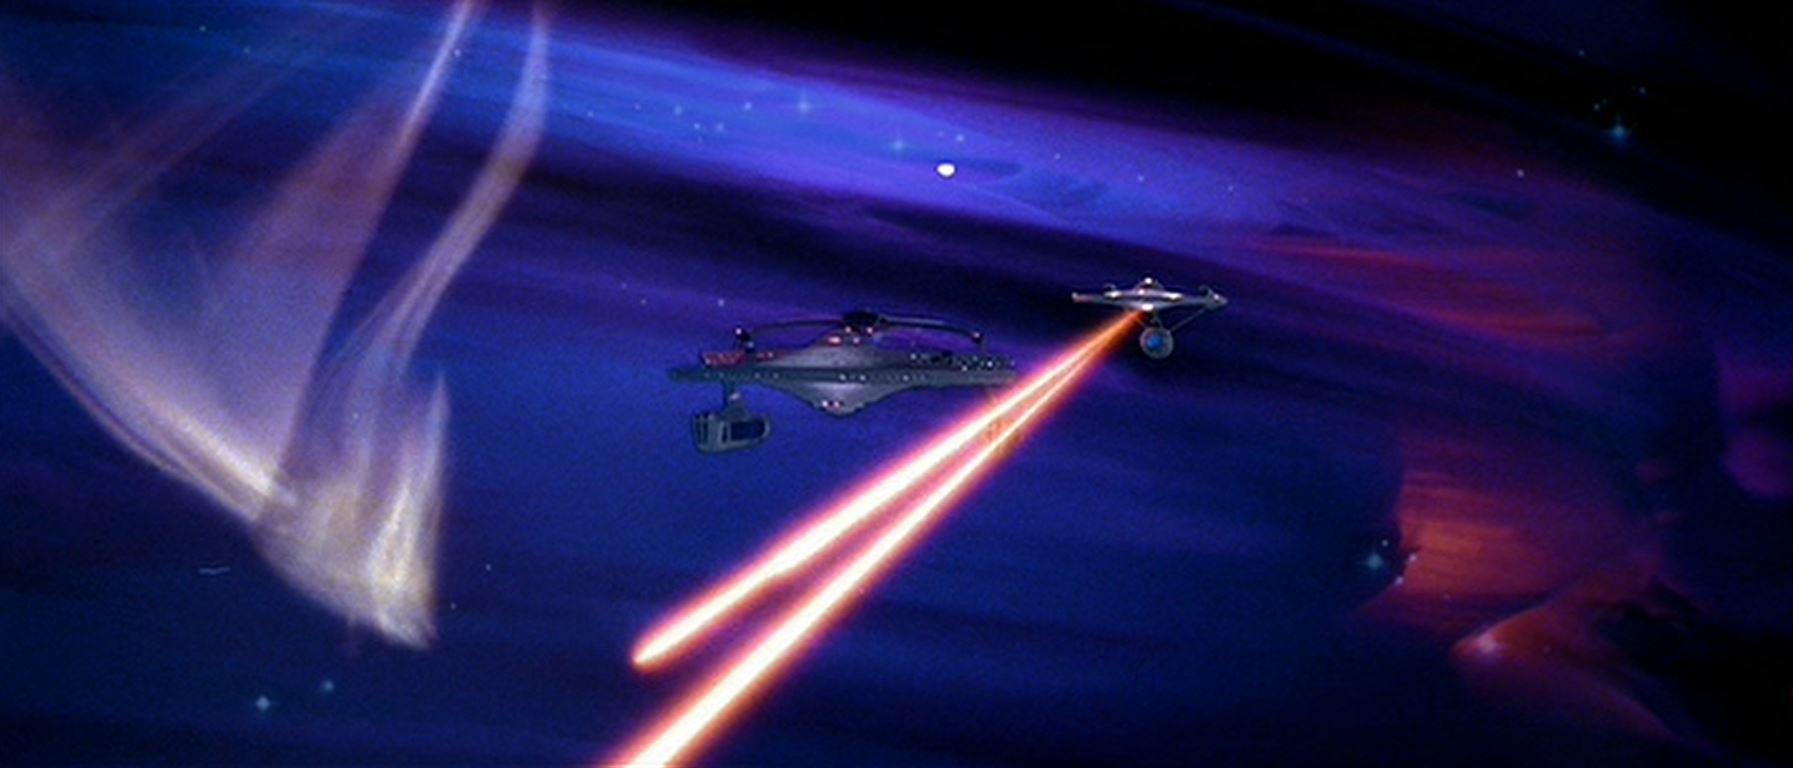 Enterprise fires on Reliant